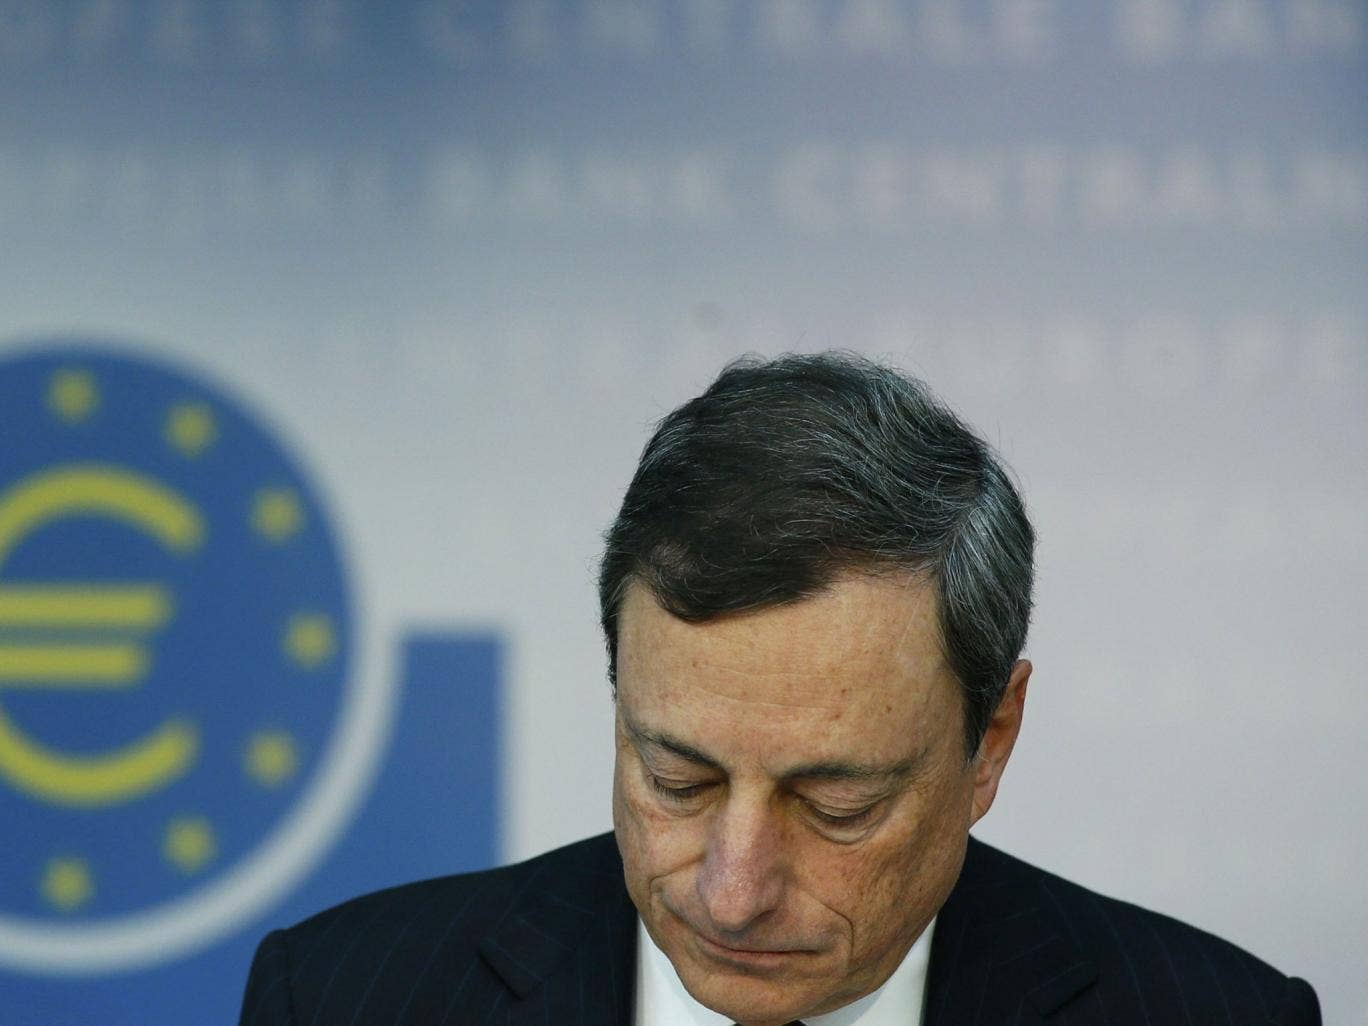 Mario Draghi, the President of the ECB